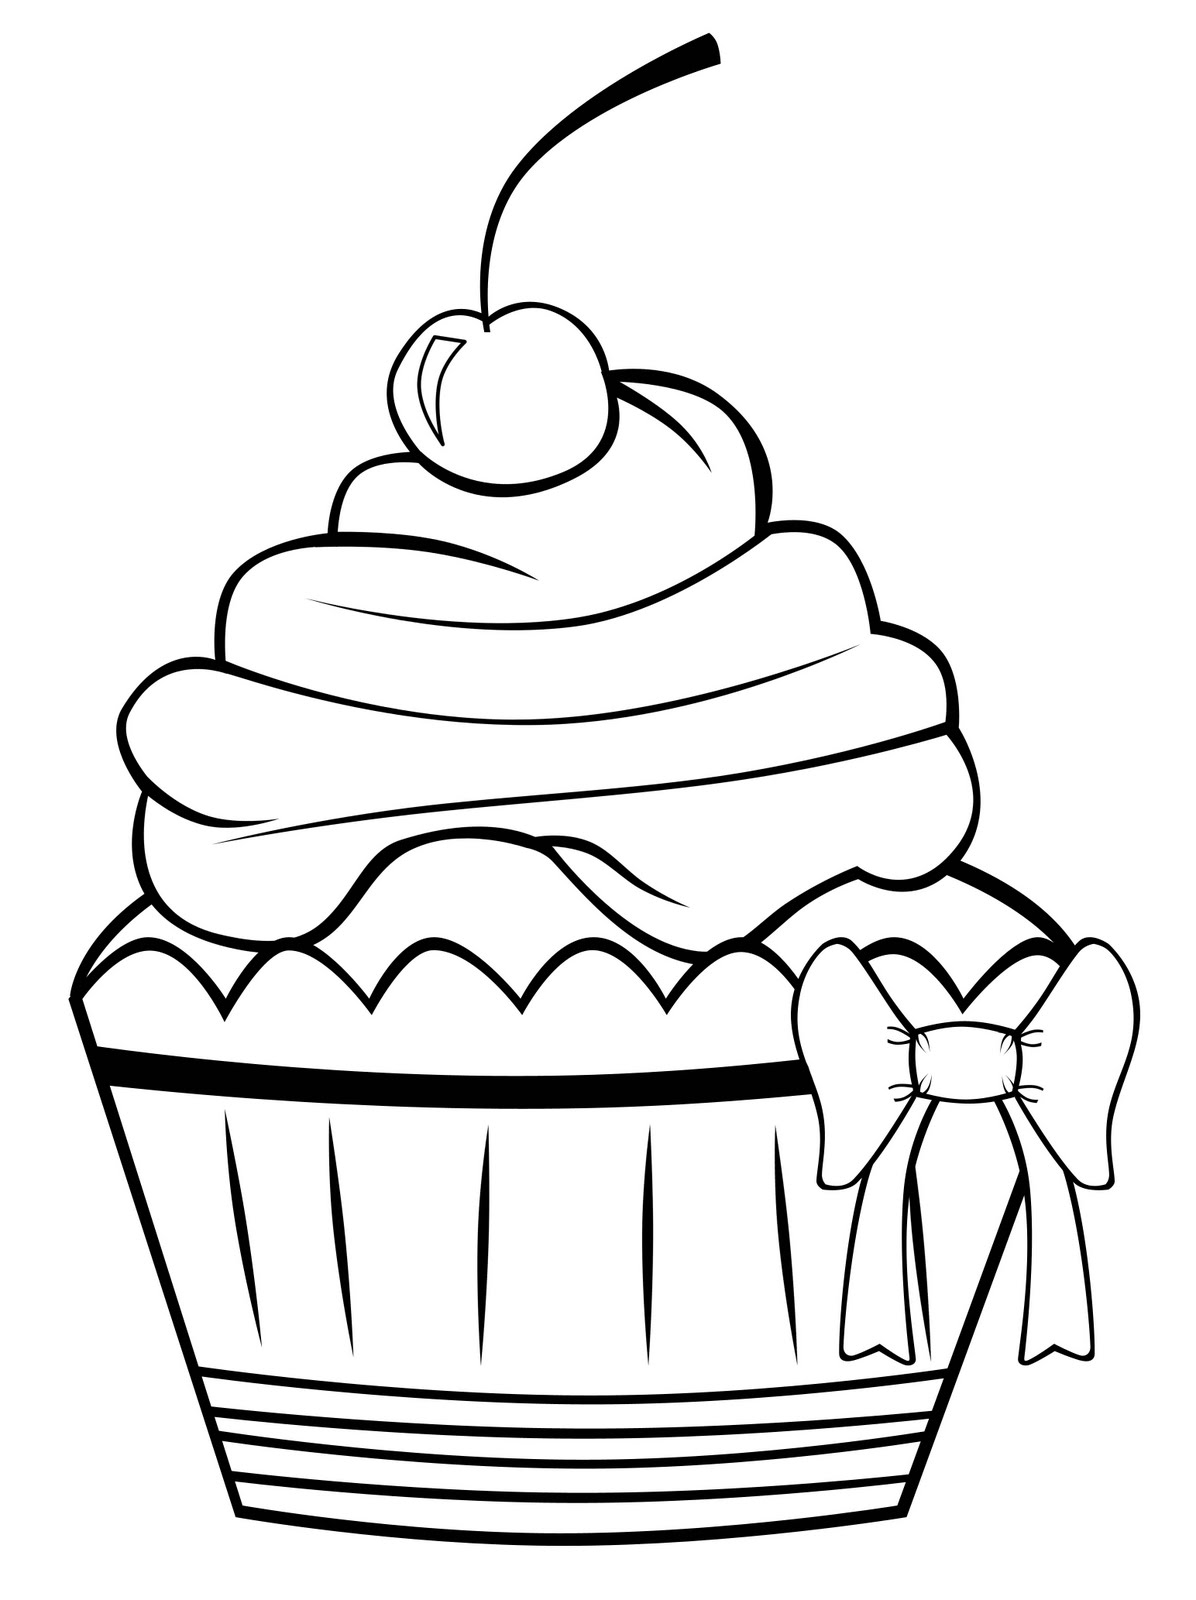 printable cupcake coloring pages cupcake coloring pages free coloring home printable cupcake coloring pages